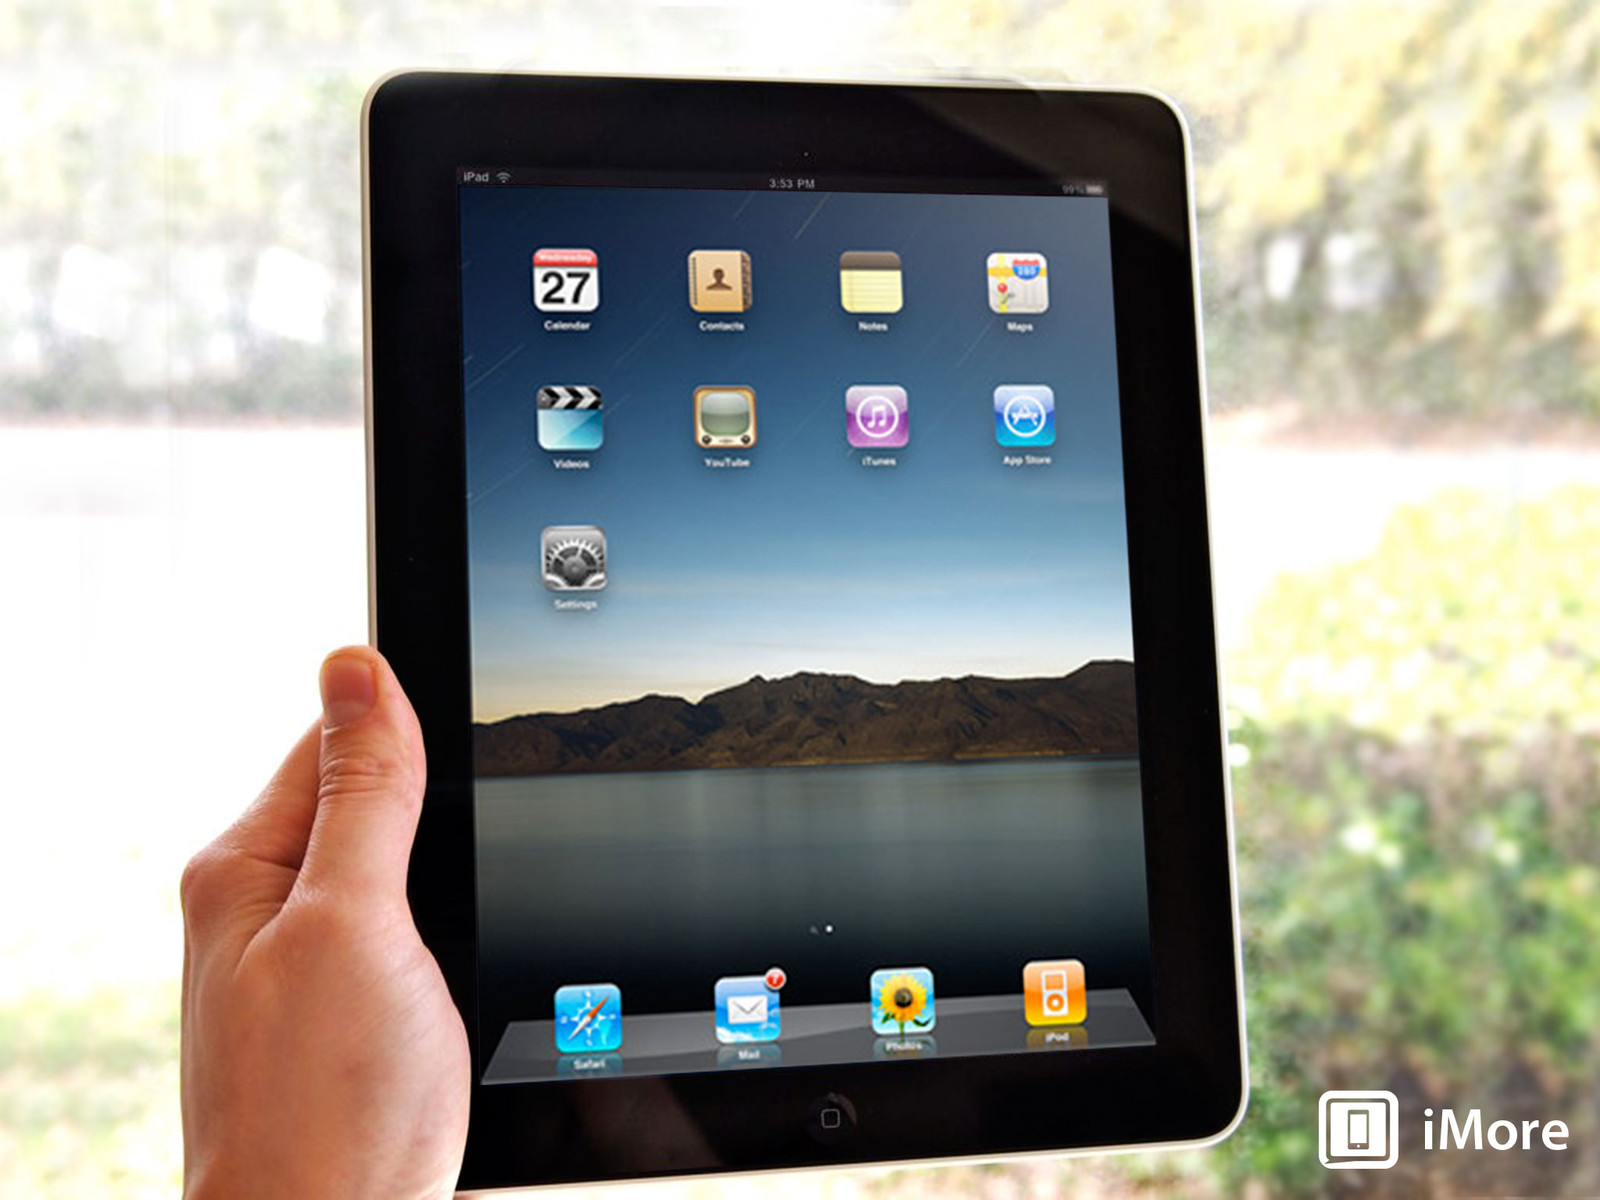 Tech – iPad Basics led by Library Director Claudia Cayne